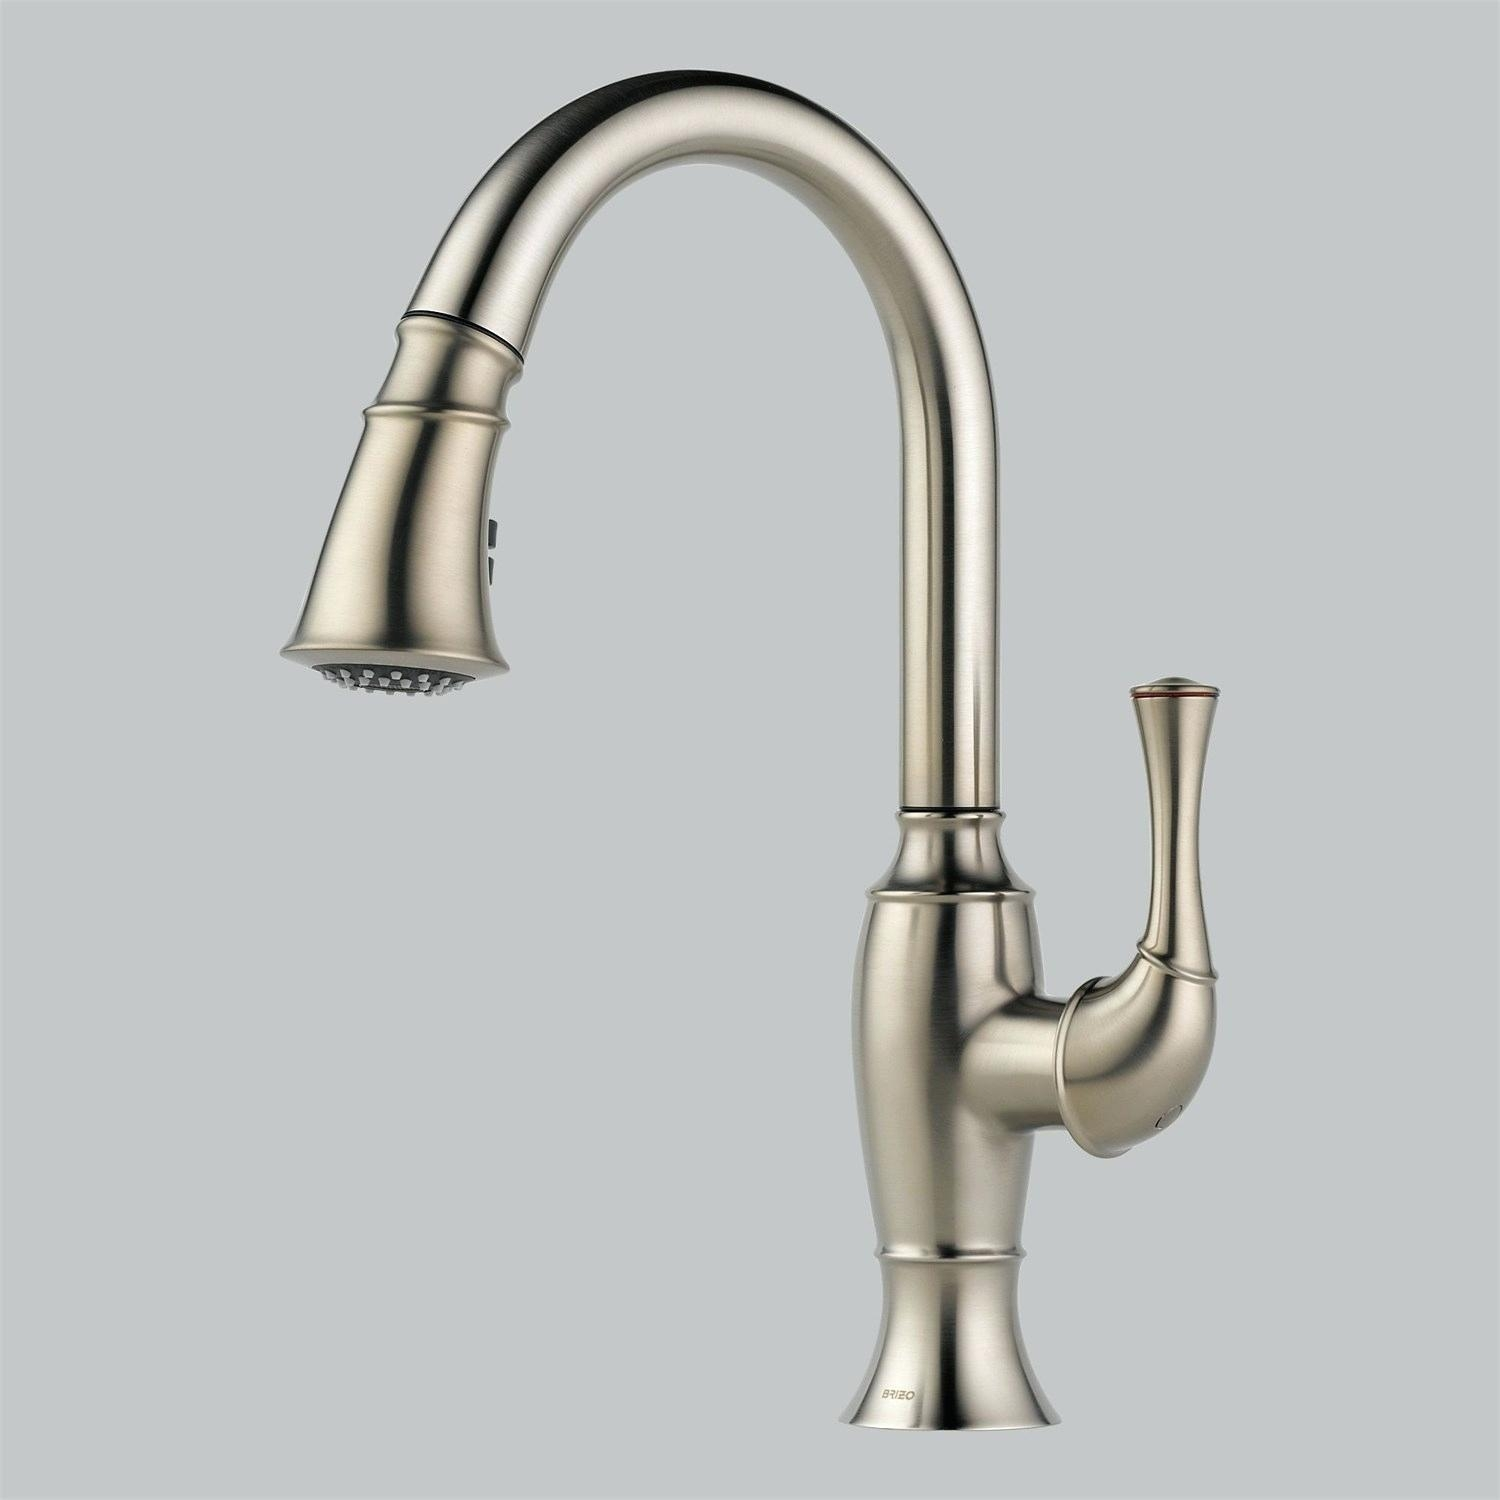 Ideas, bronze faucets kitchen high end bathroom faucets grohe kitchen pertaining to proportions 1500 x 1500  .